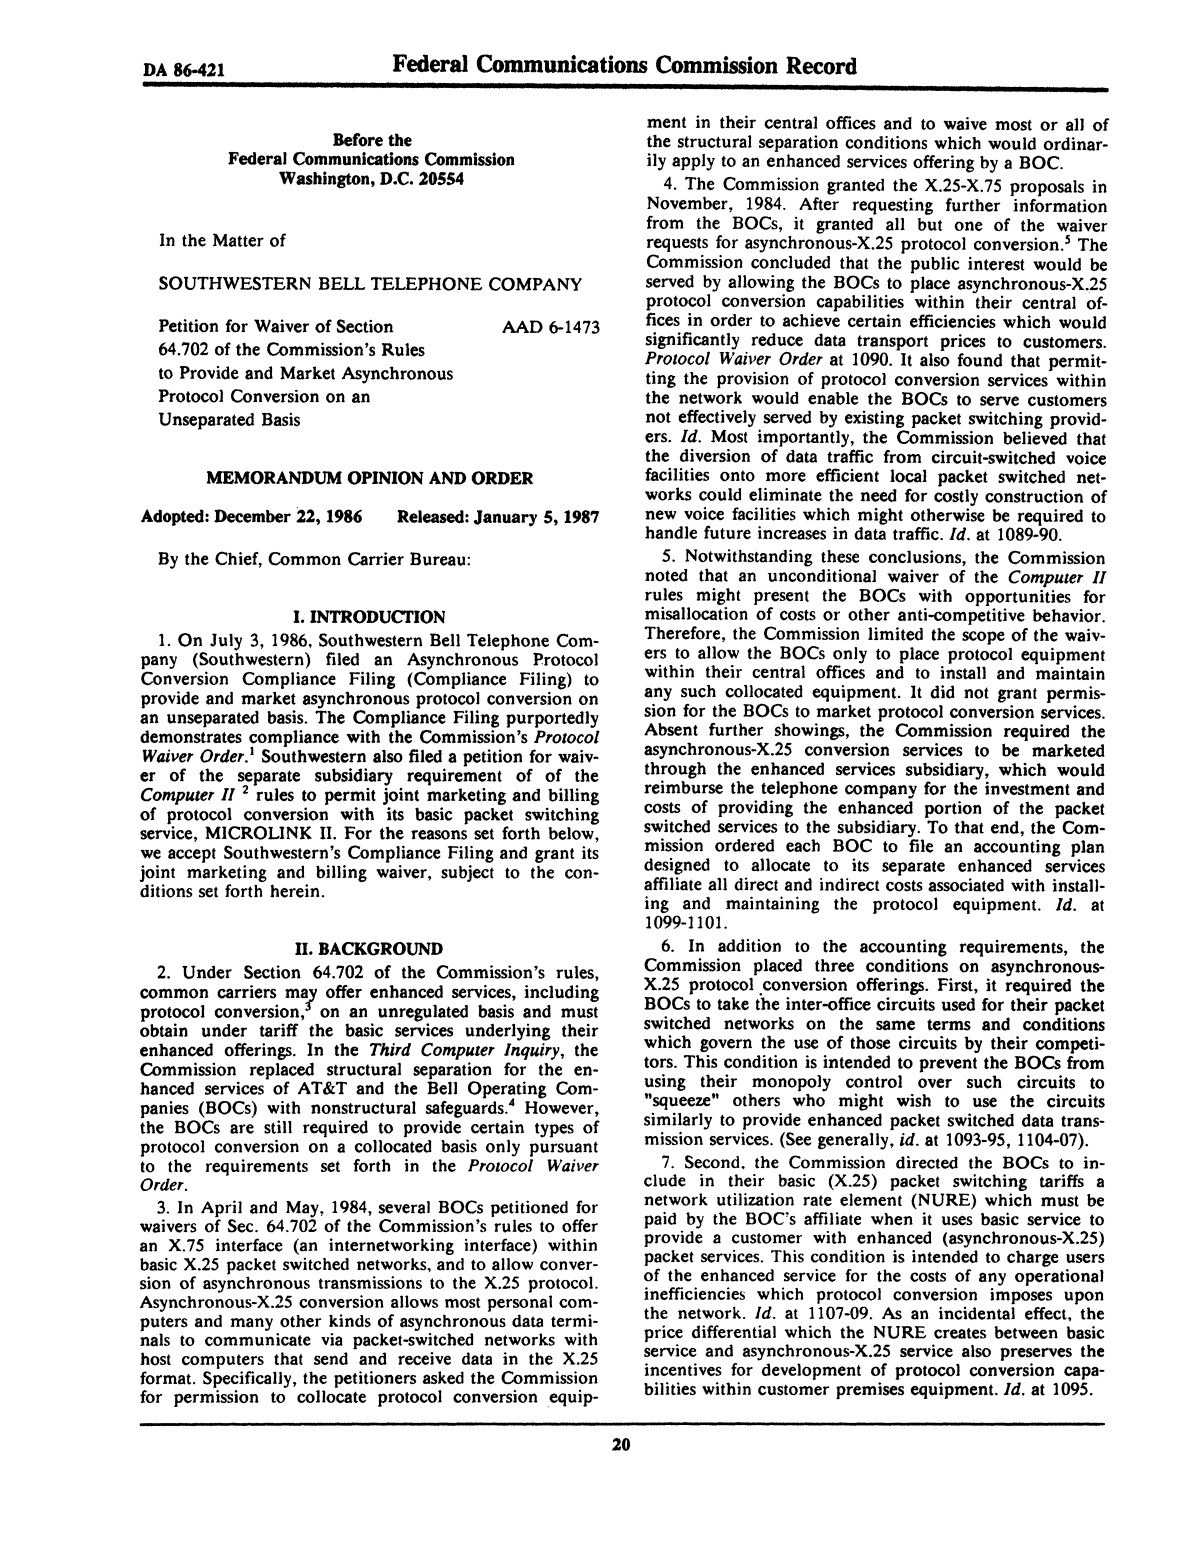 FCC Record, Volume 2, No. 1, Pages 1 to 409, January 5 - January 16, 1987                                                                                                      20